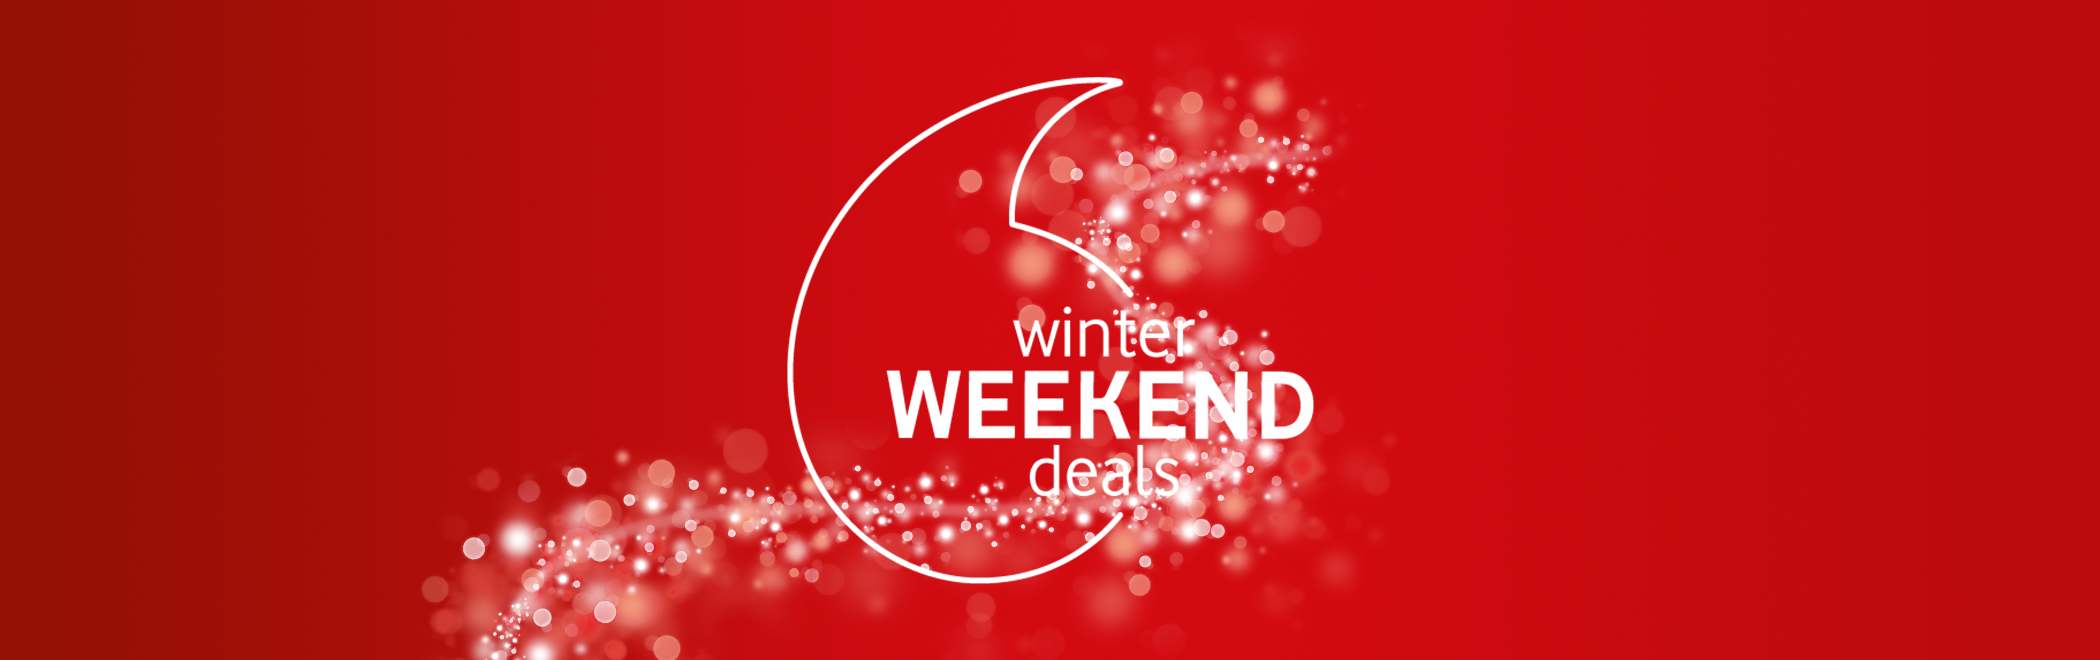 Vodafone Winter Weekend Deals!